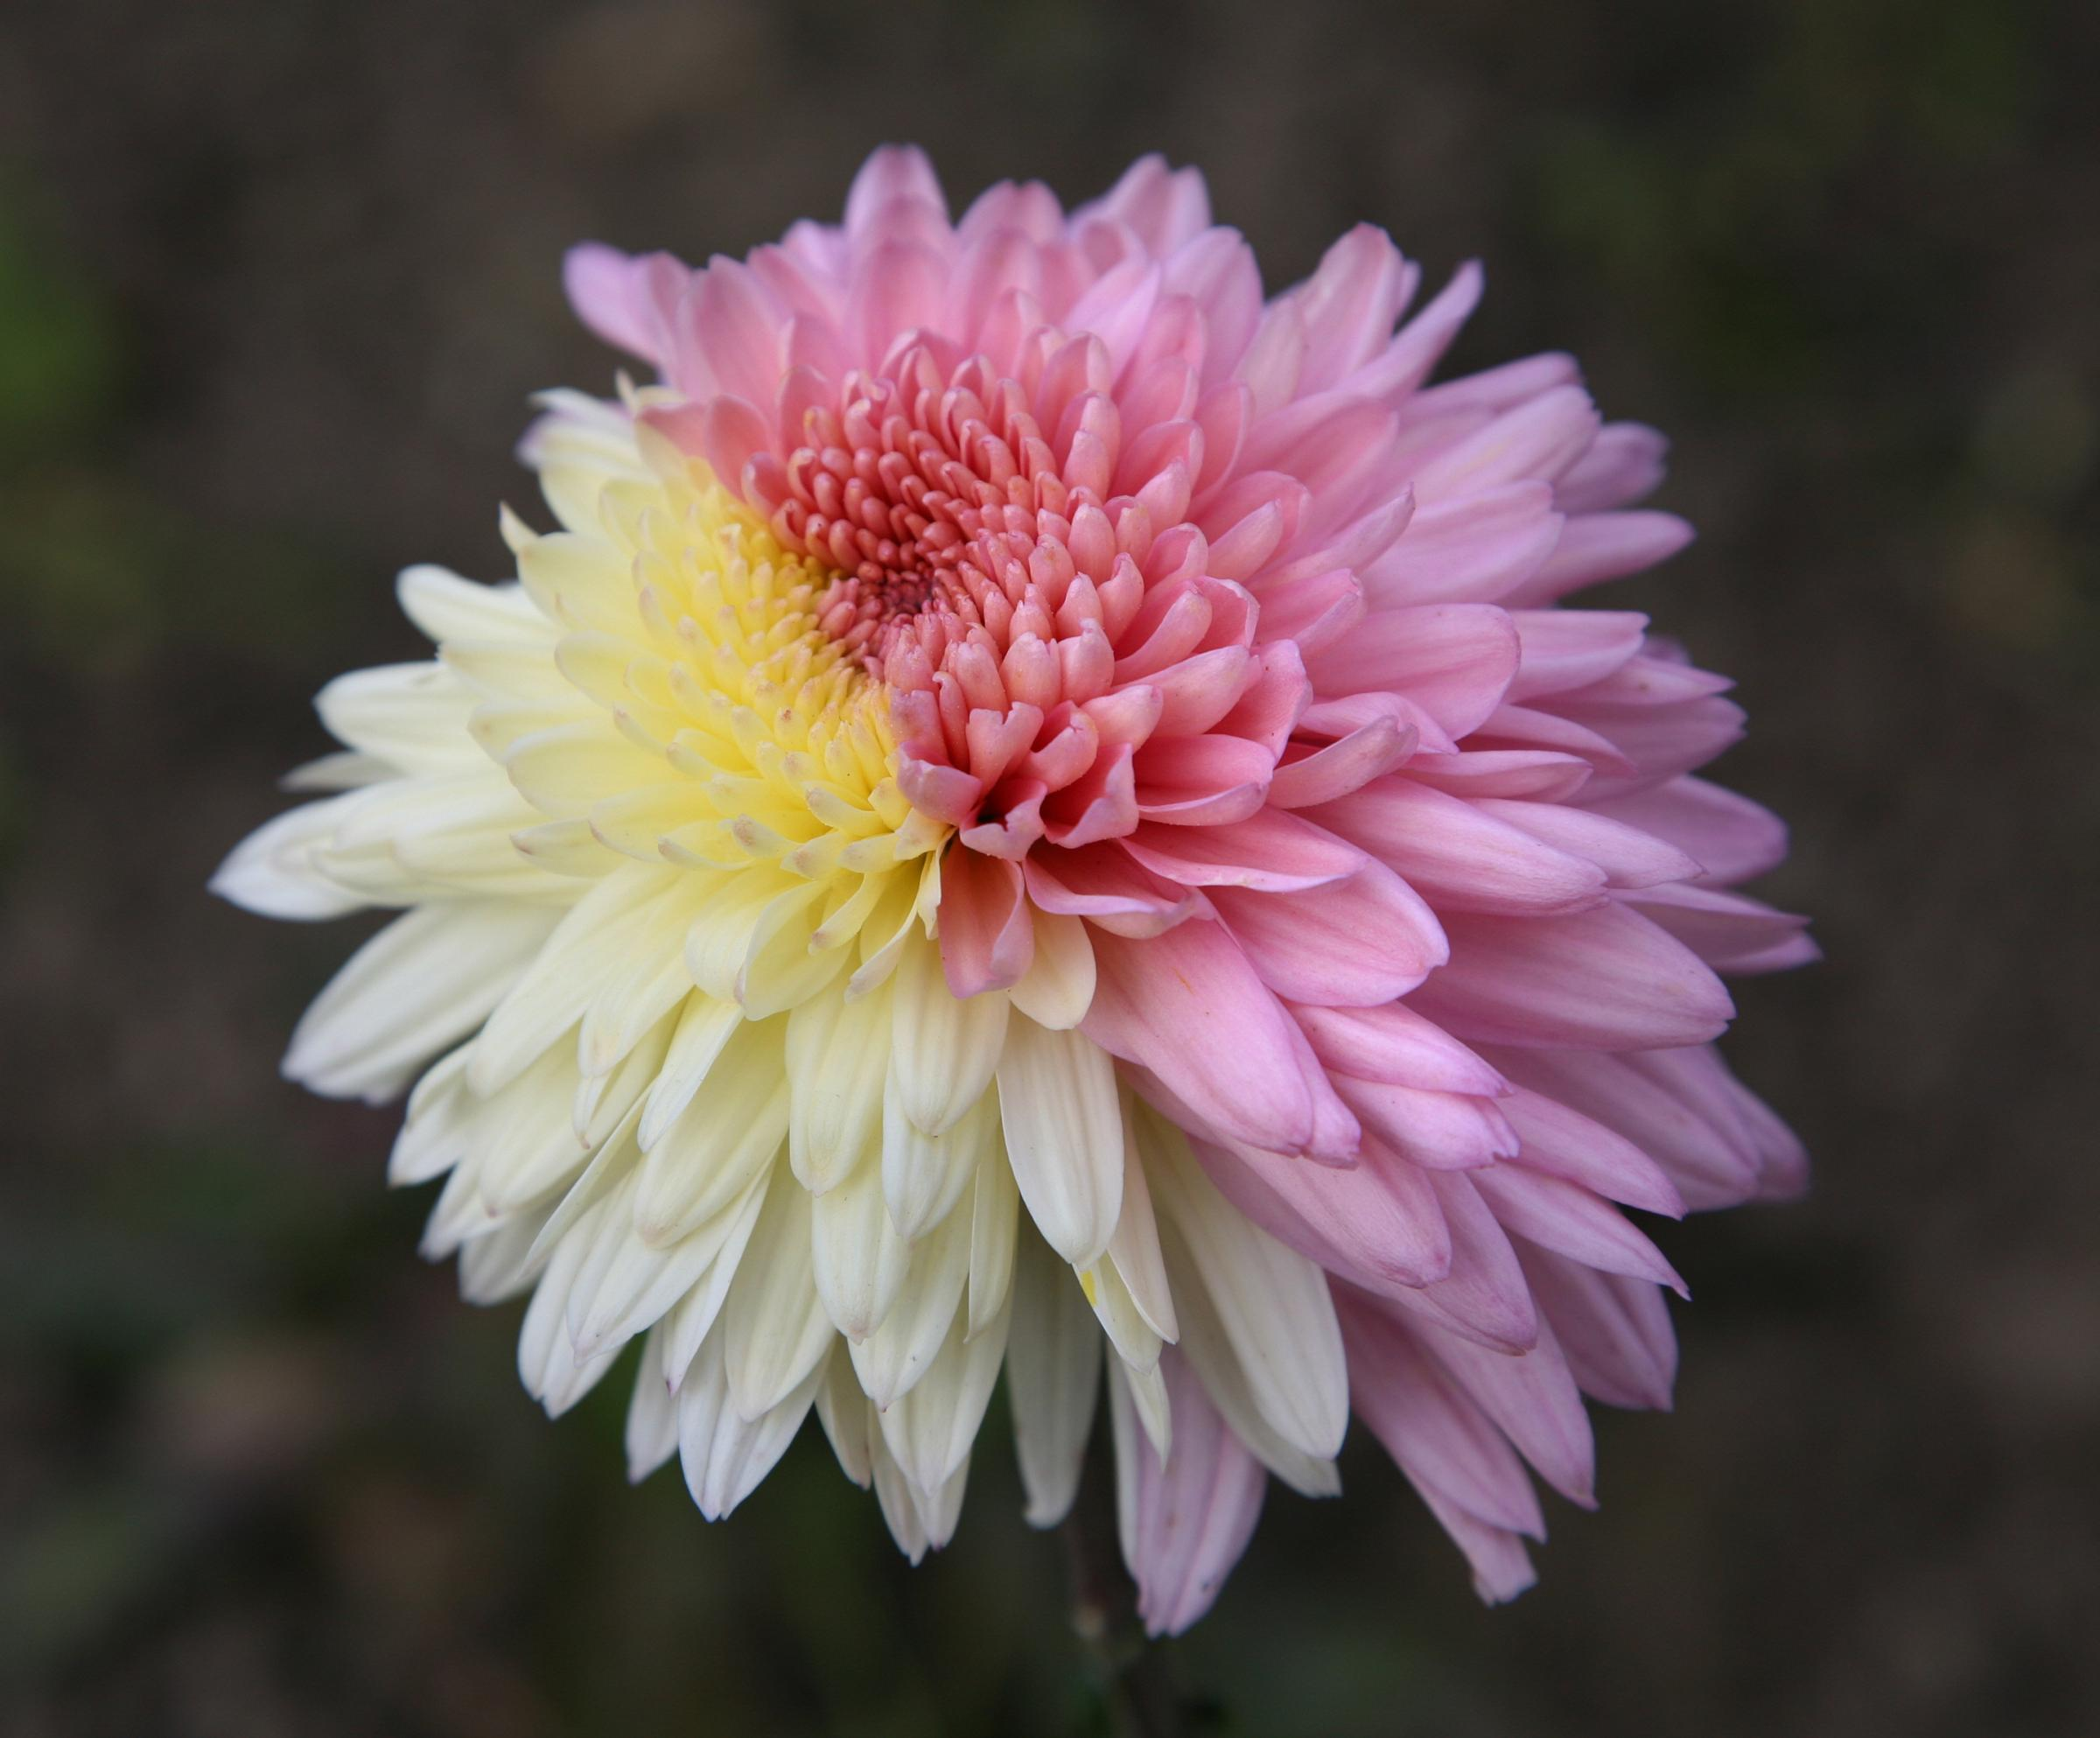 dahlia and chrysanthemum